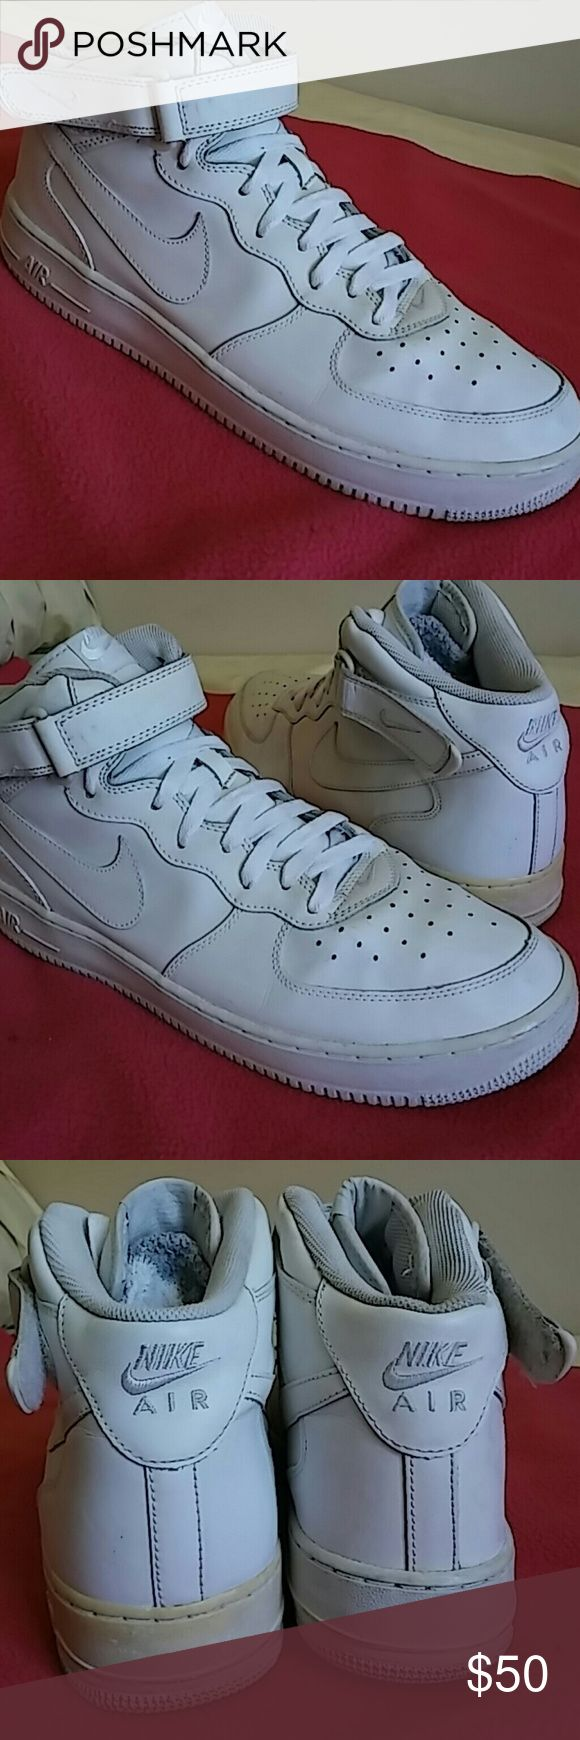 Nike Air Force 1...SIZE 13 A very great shoes that shows signs of used but in great shape. Leather and sole both intact with the left shoes showing some yellowing around soles. Shoes is rated 8/10. Nike Shoes Sneakers